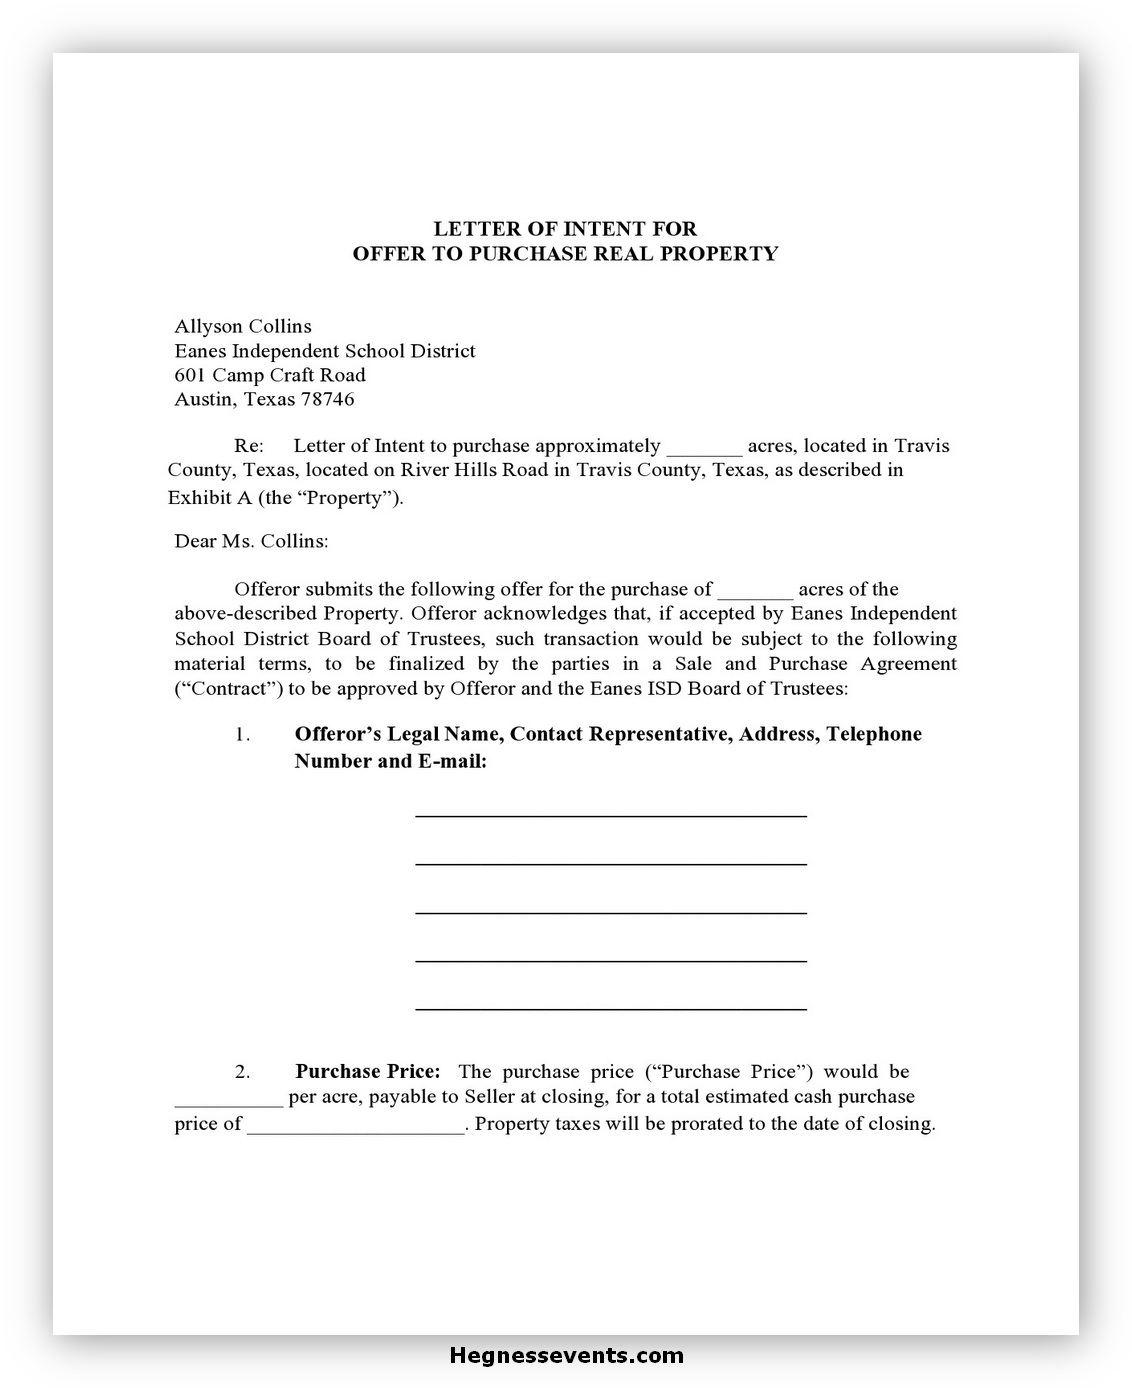 Real Estate Letter of Intent 06